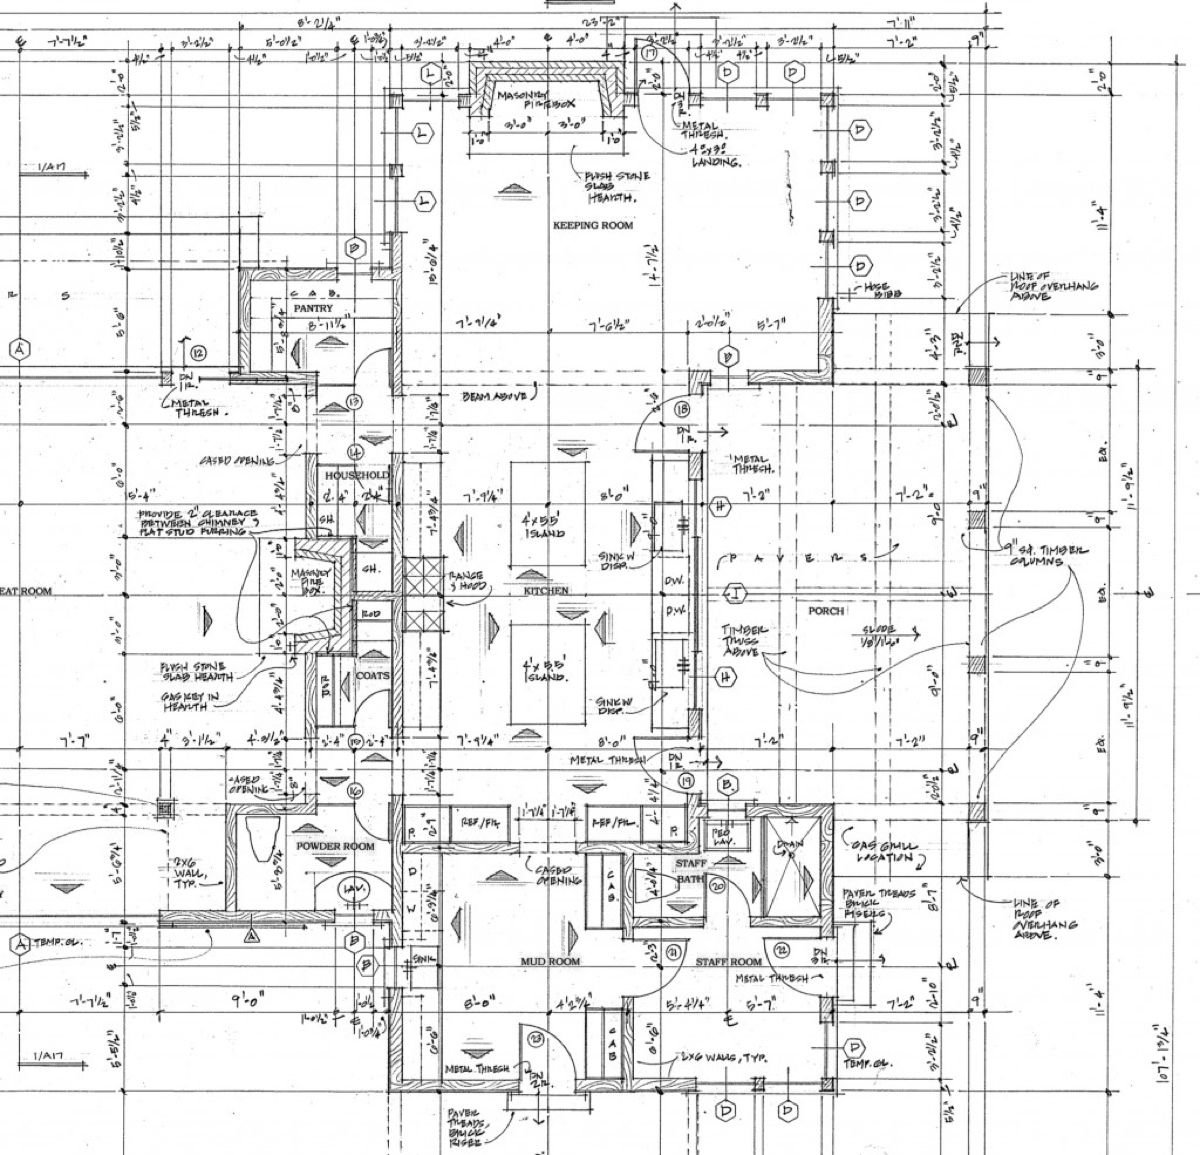 Architectural drawings are too complicated for employees